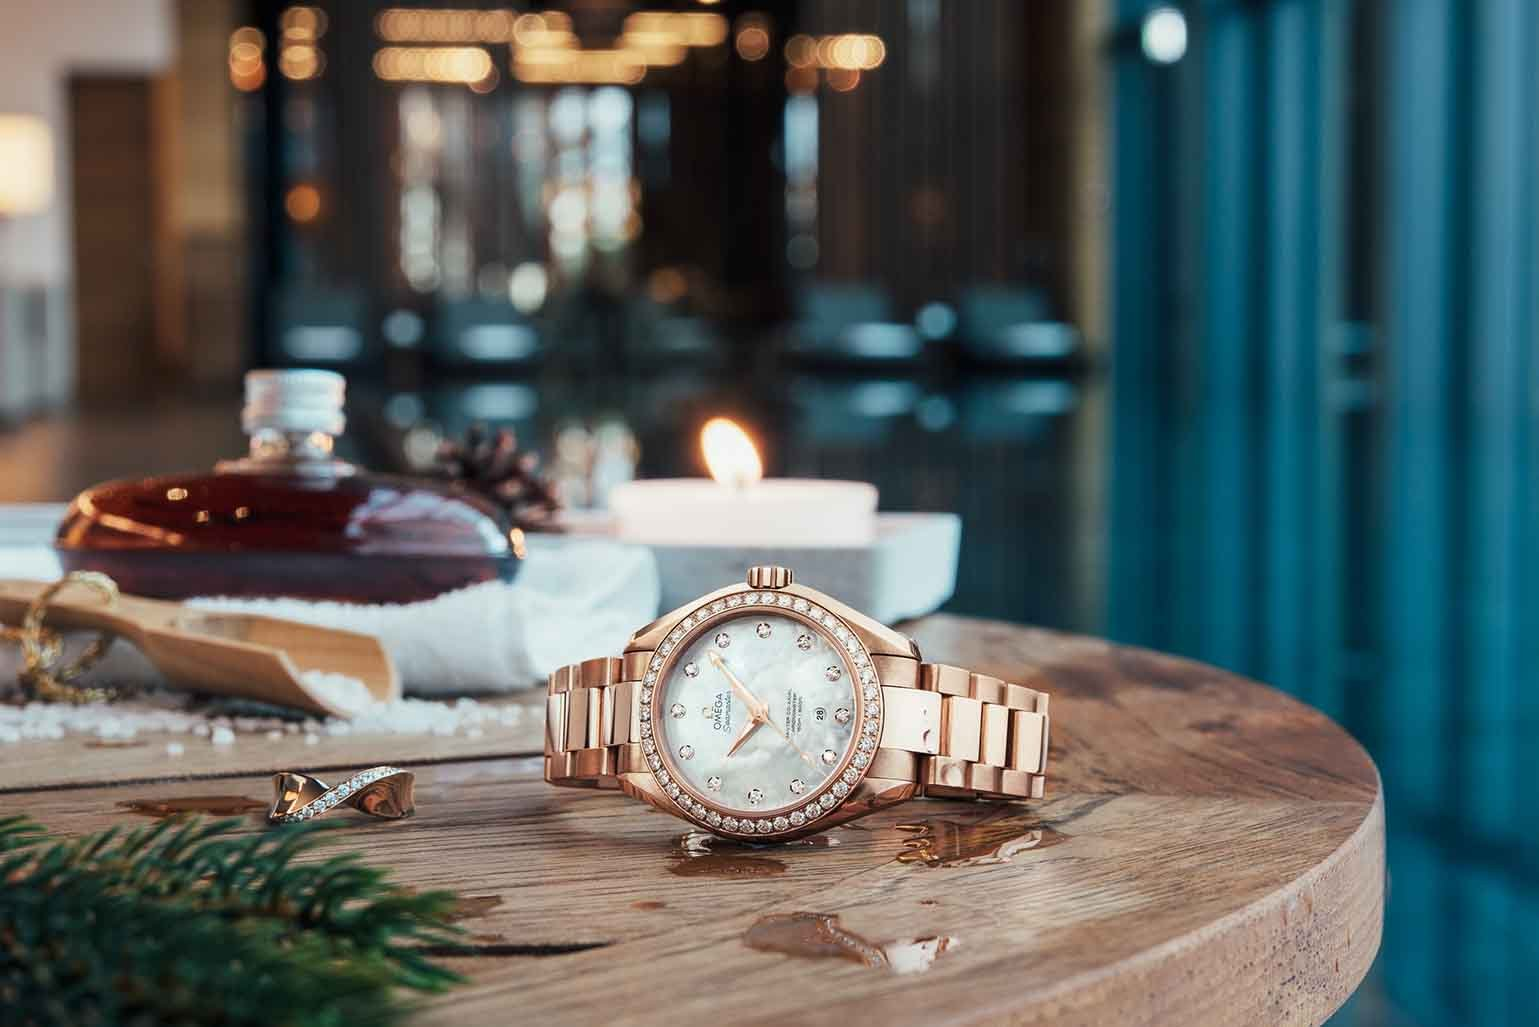 Omega Aquaterra The Luxury Trends